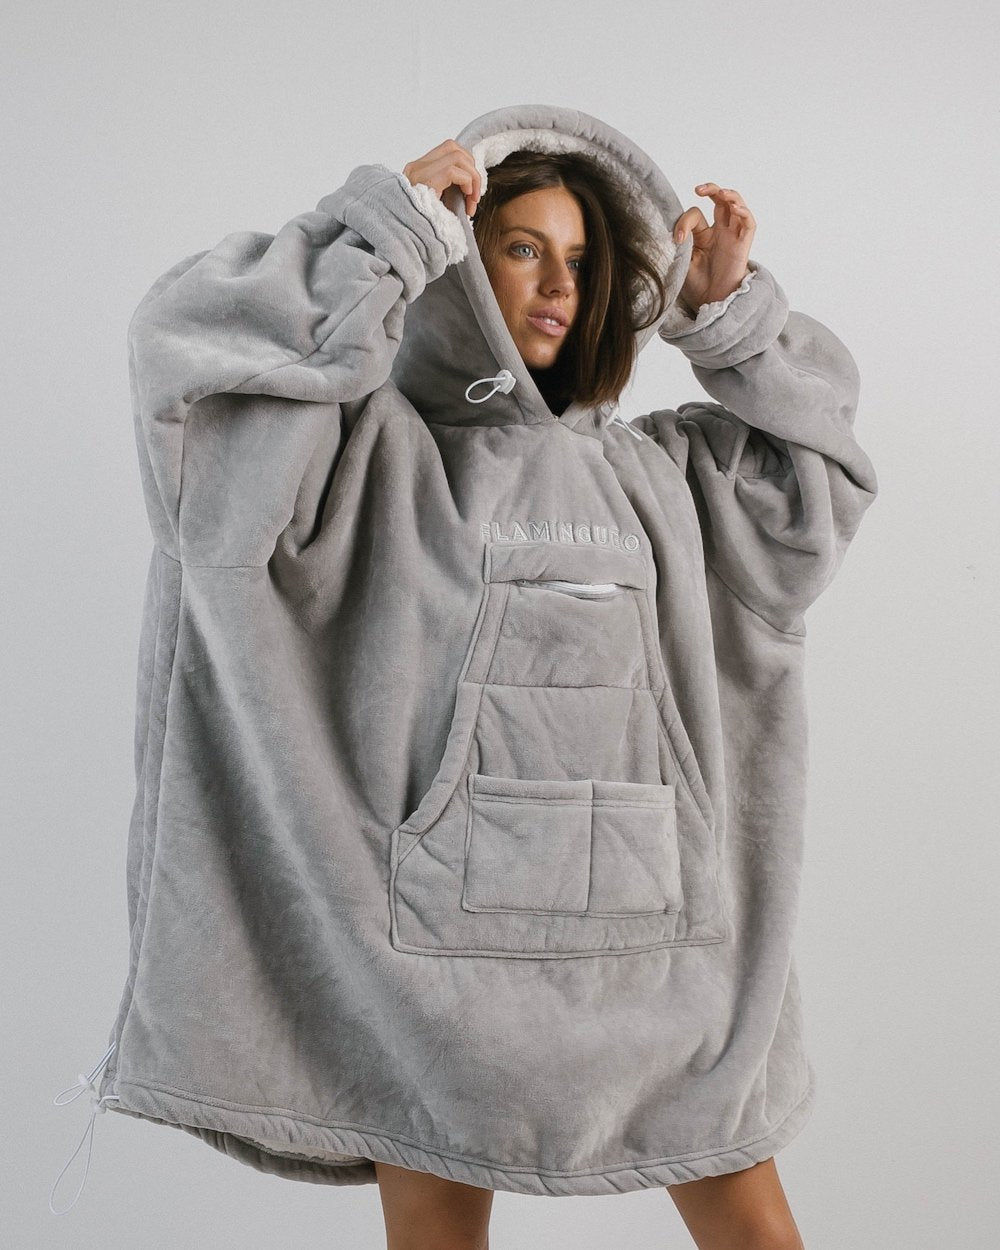 HAGRID CLOUD GRAY - Sudadera / Manta